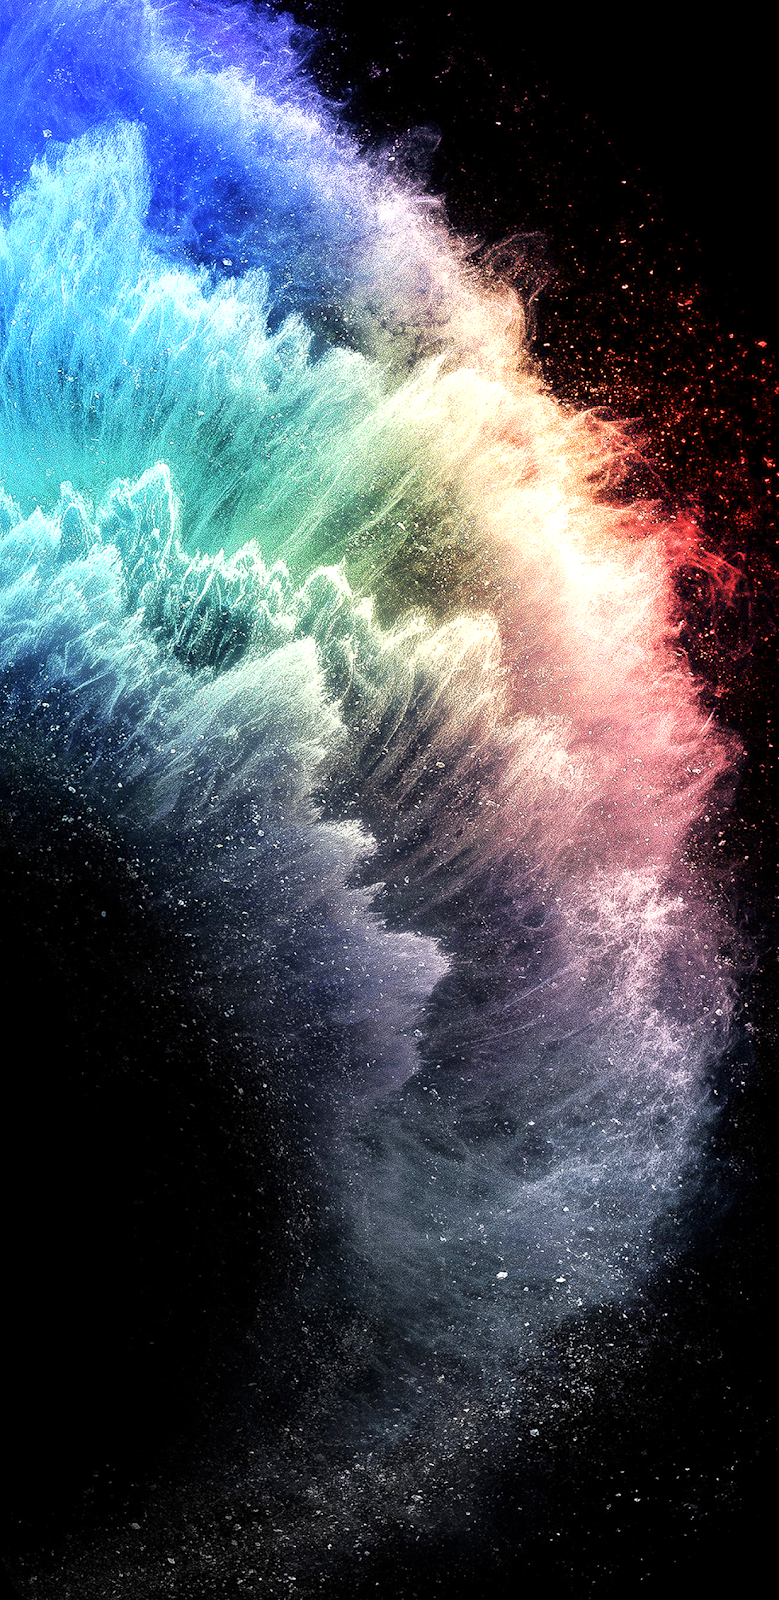 iPhone 11 Pro Amoled Wallpapers - Wallpaper Cave